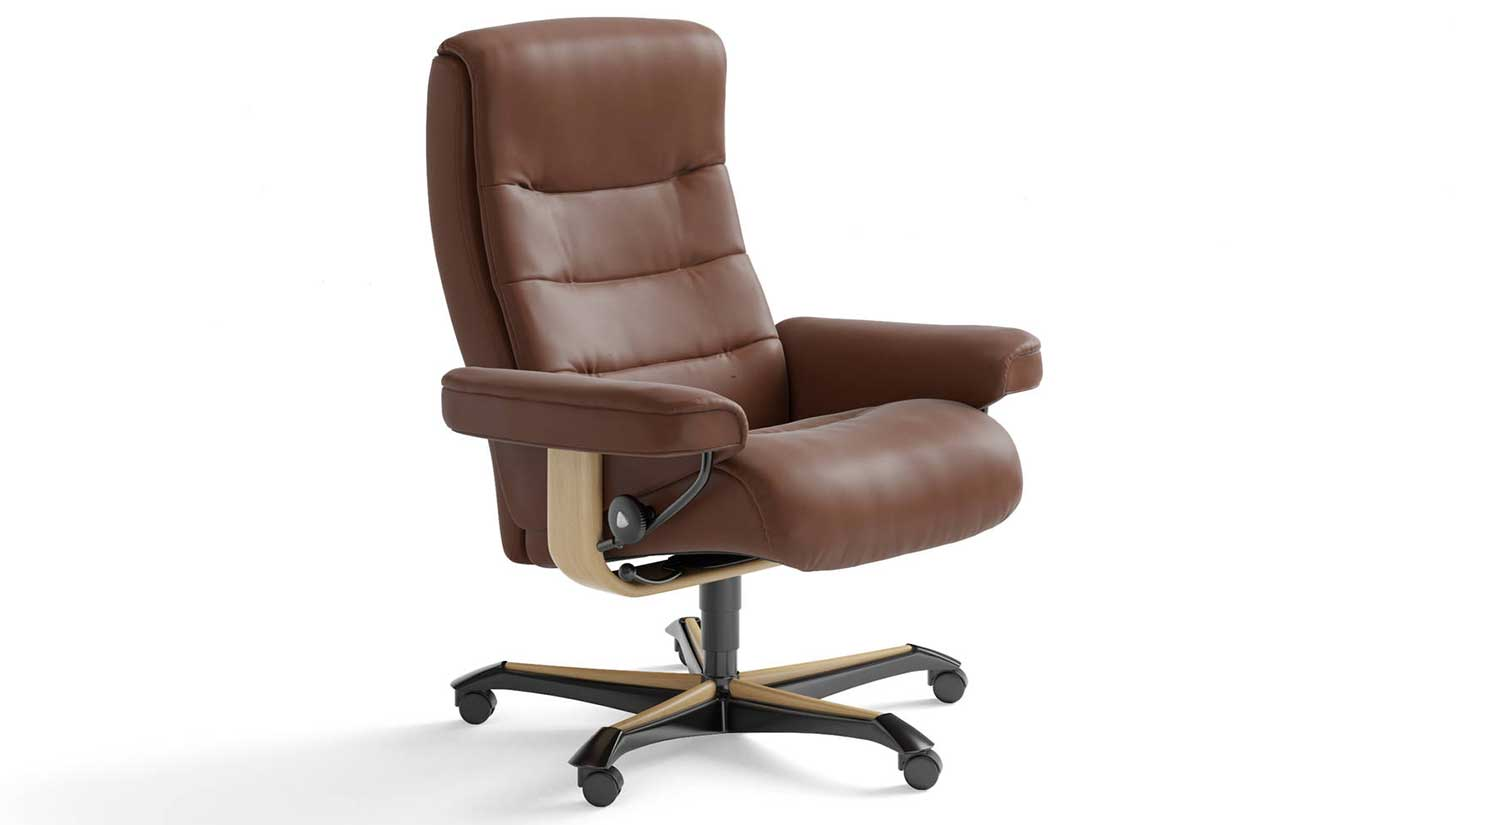 Stressless Office Chair Circle Furniture Nordic Stressless Office Chair